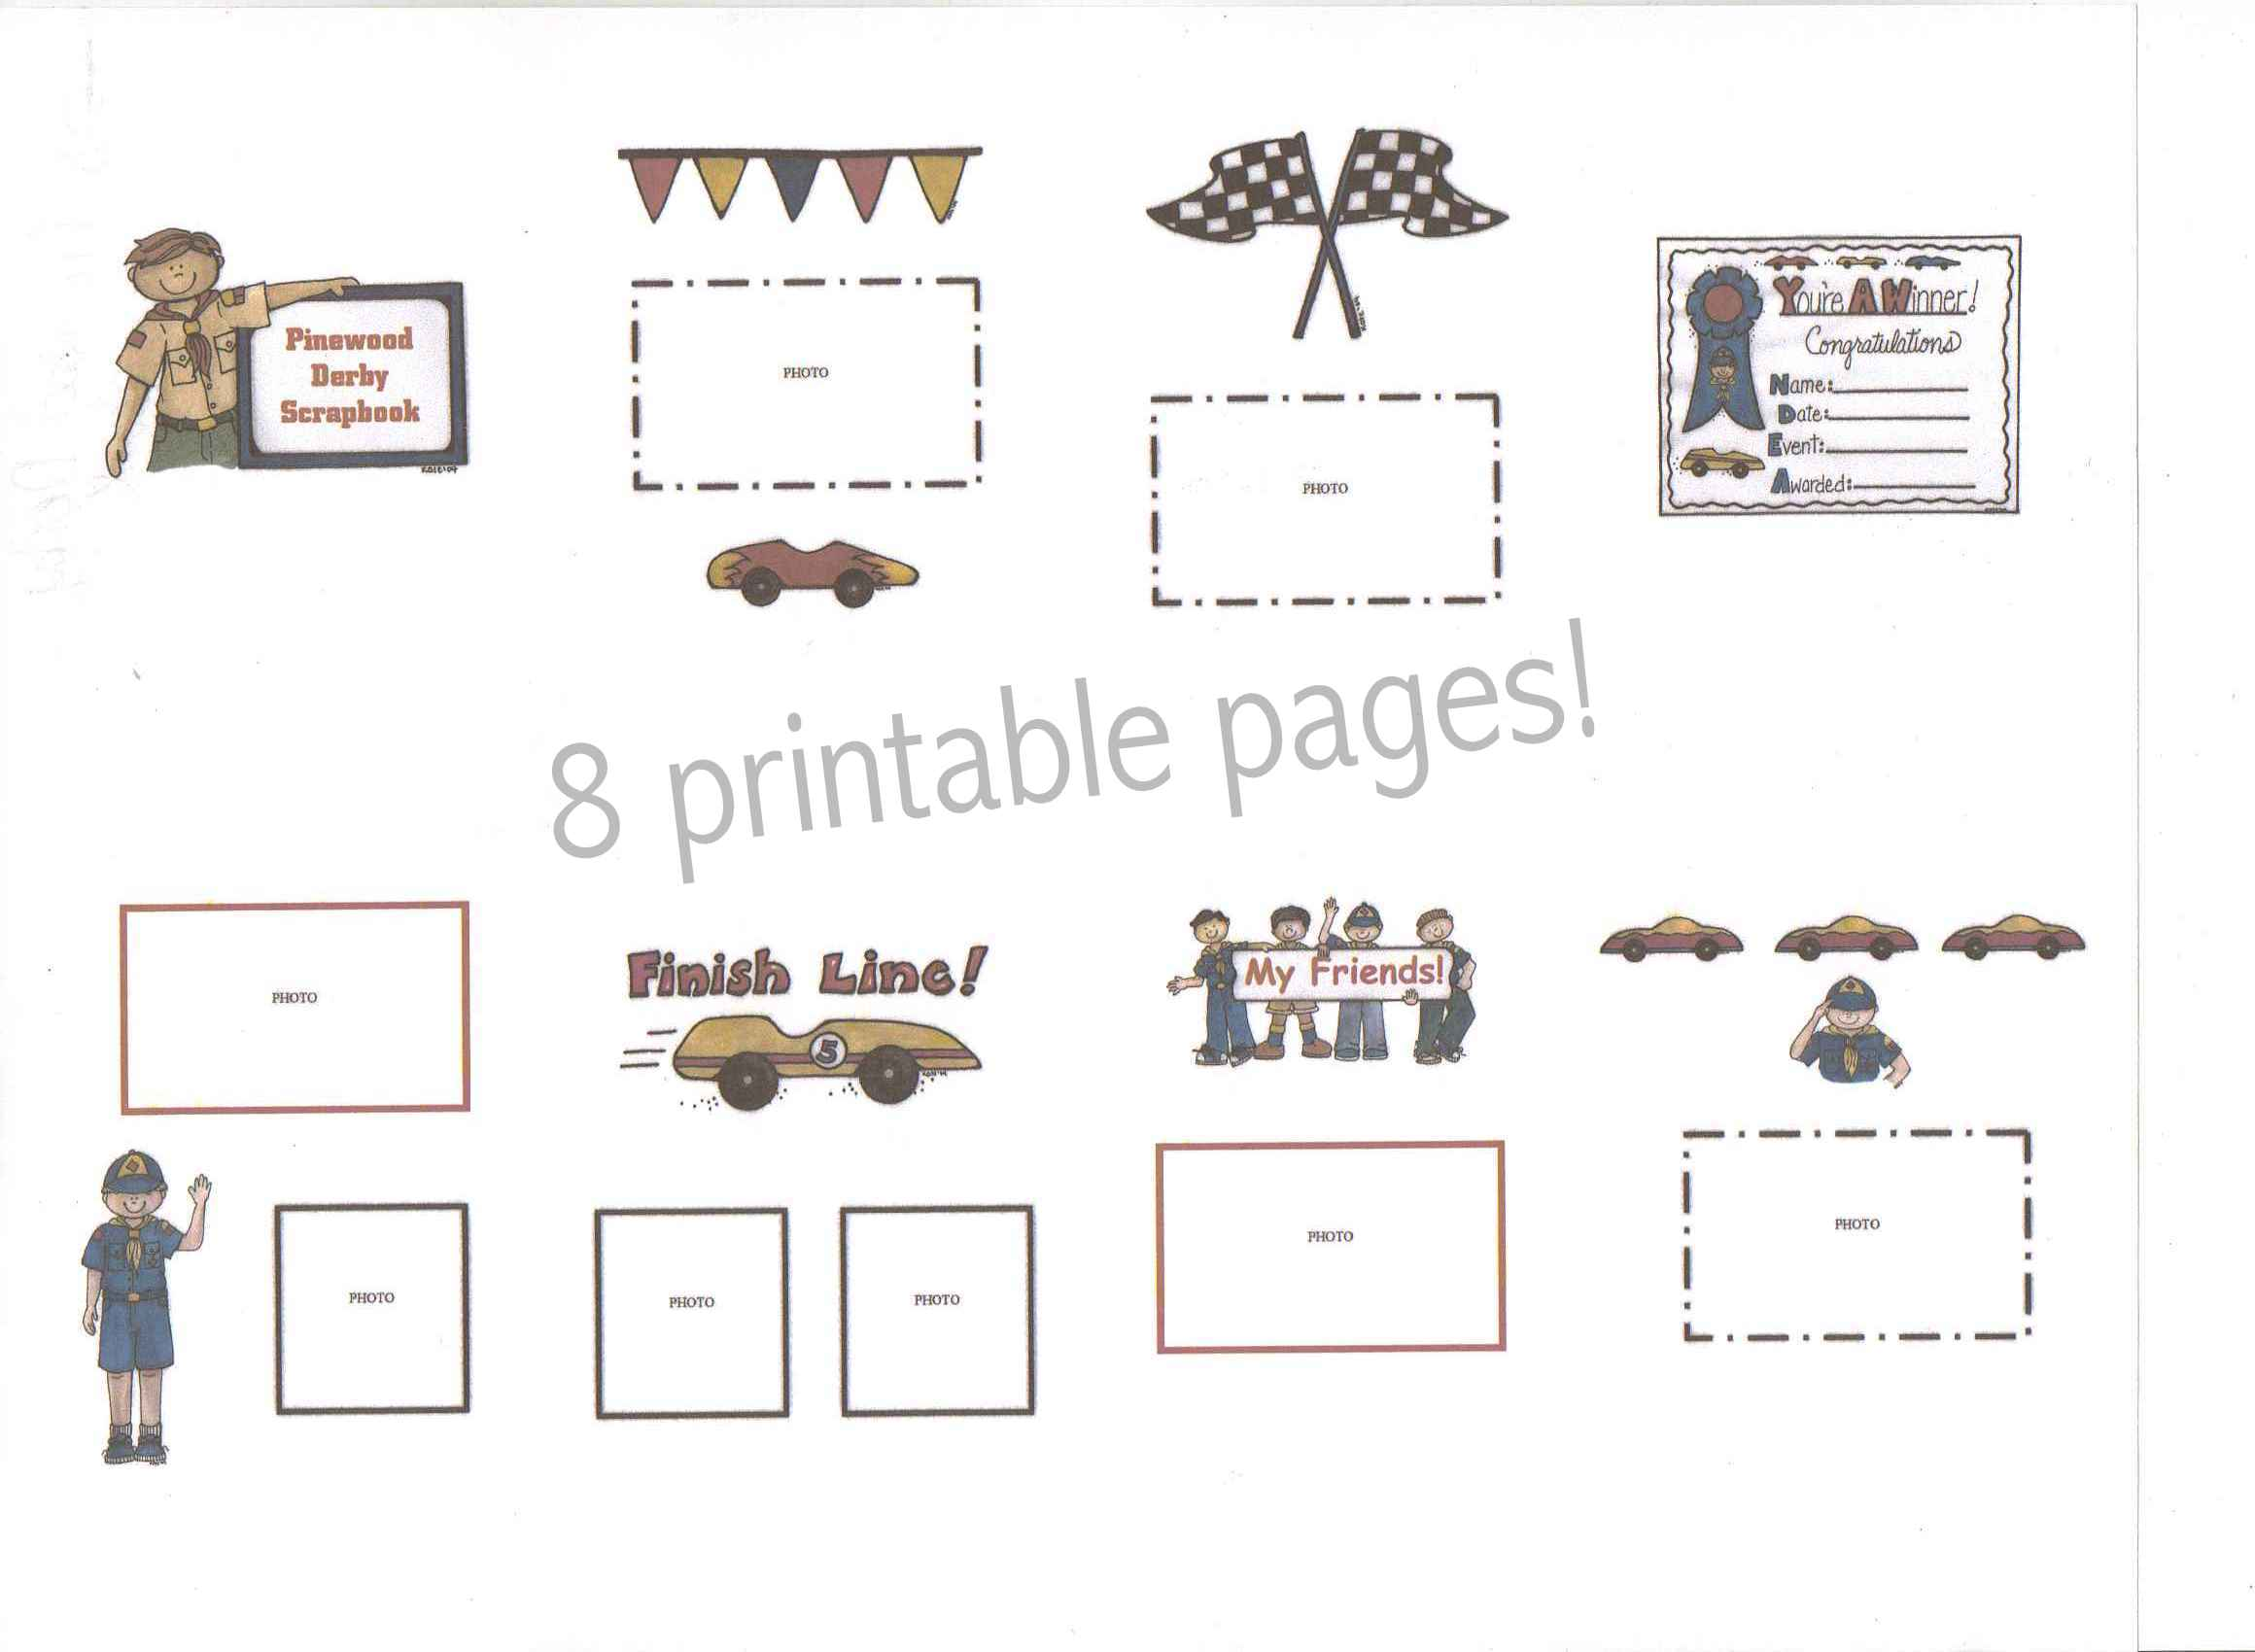 worksheet Merit Badges Worksheets boy scout merit badges worksheets abitlikethis cub scouts pinewood derby printables on worksheets